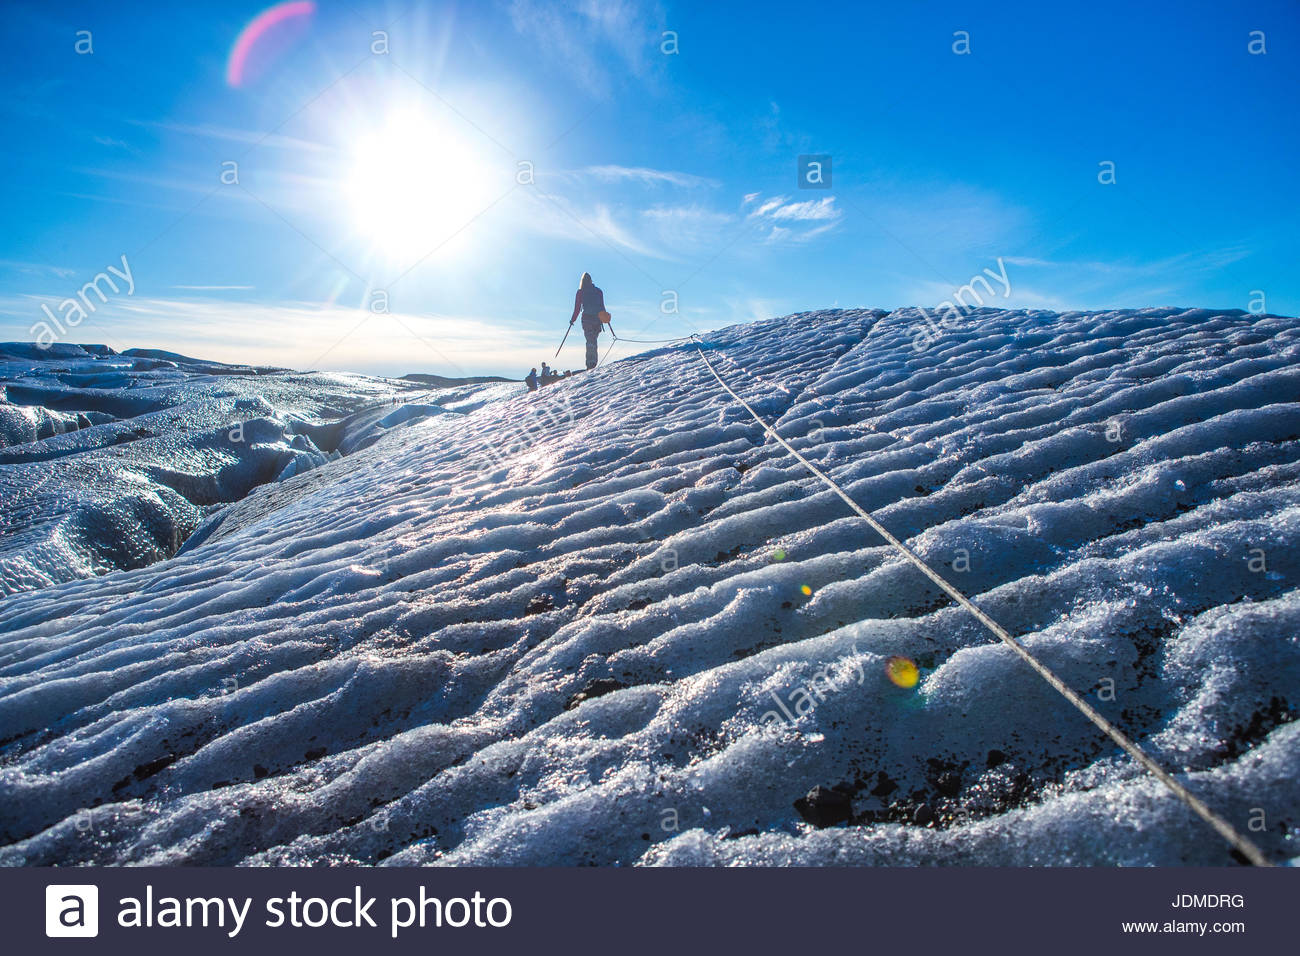 A woman walks along a safety rope to keep from sliding into a crevasse on the Vatnajokull Glacier. - Stock Image